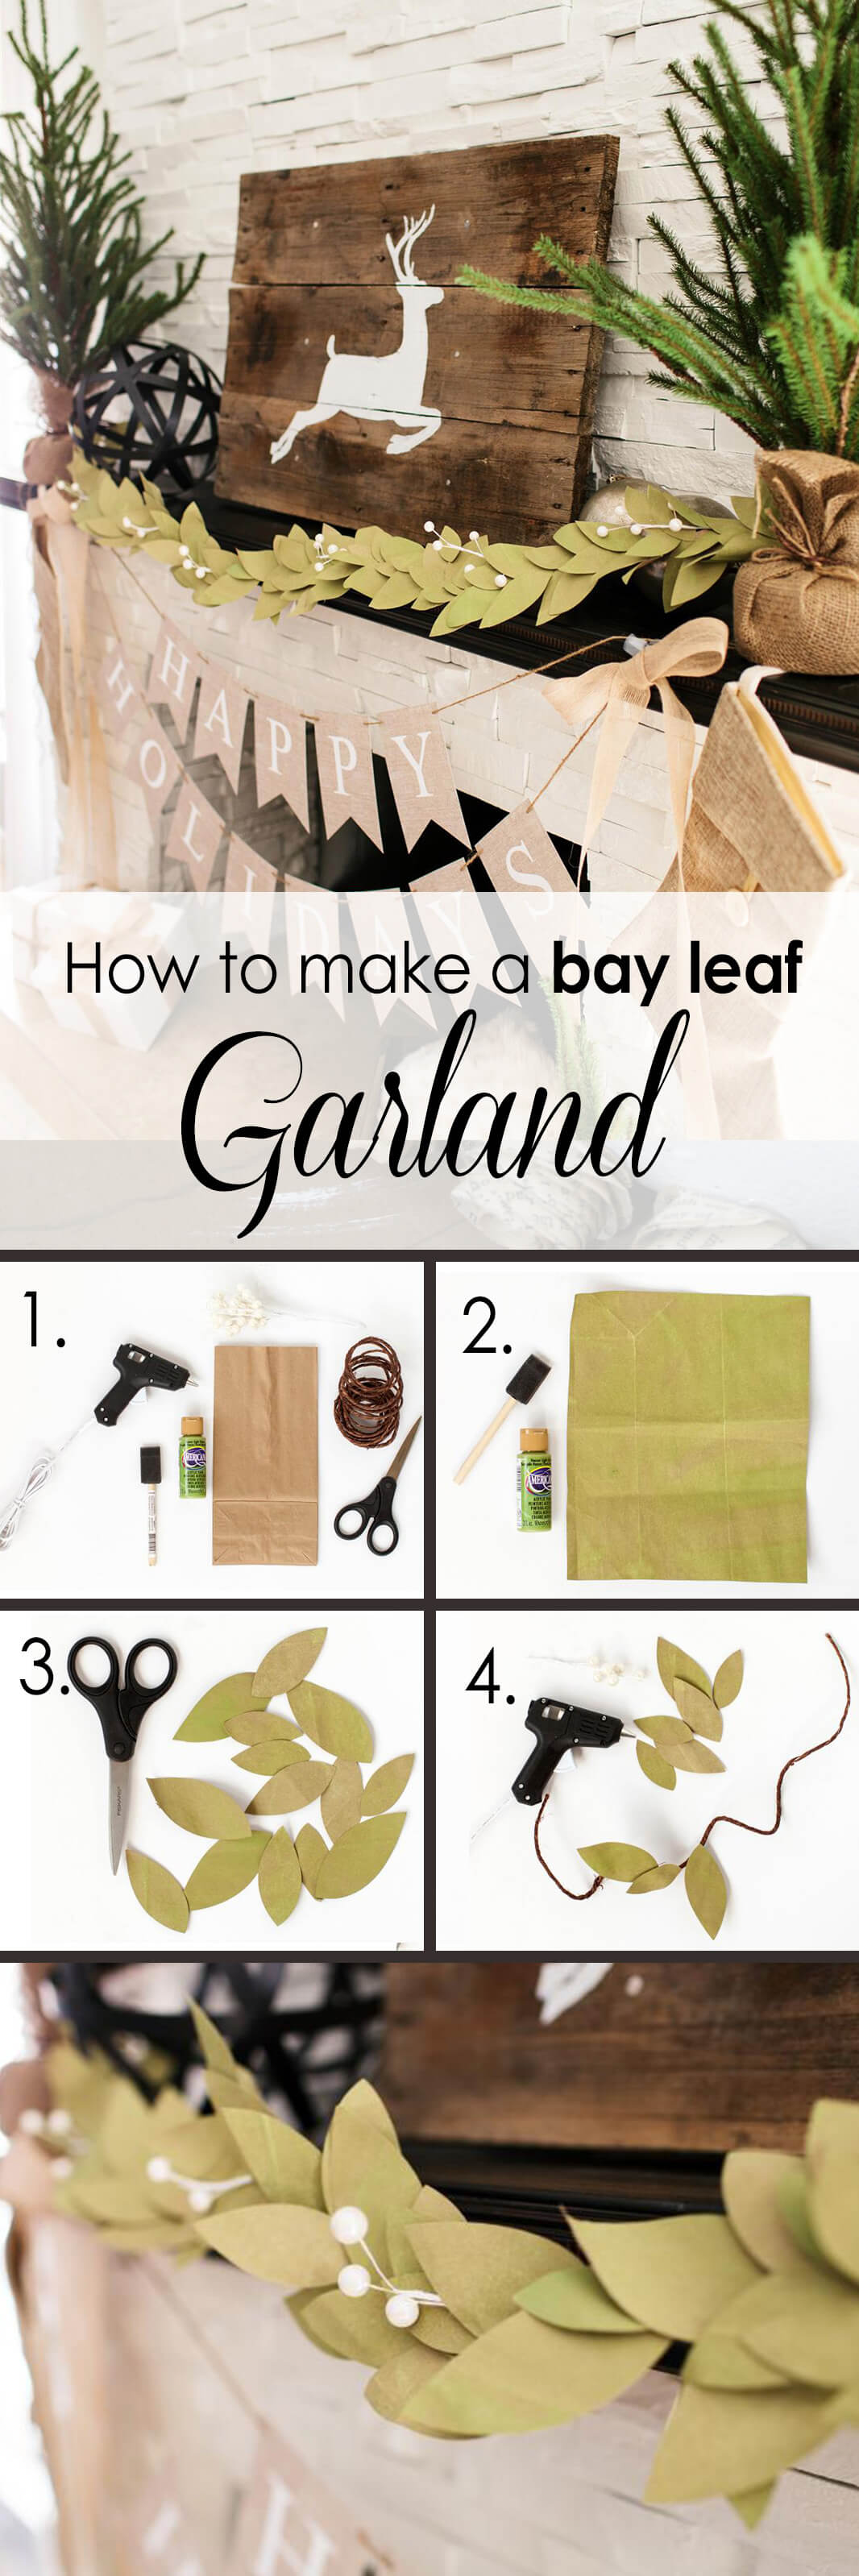 DIY Faux Bay Leaf Garland